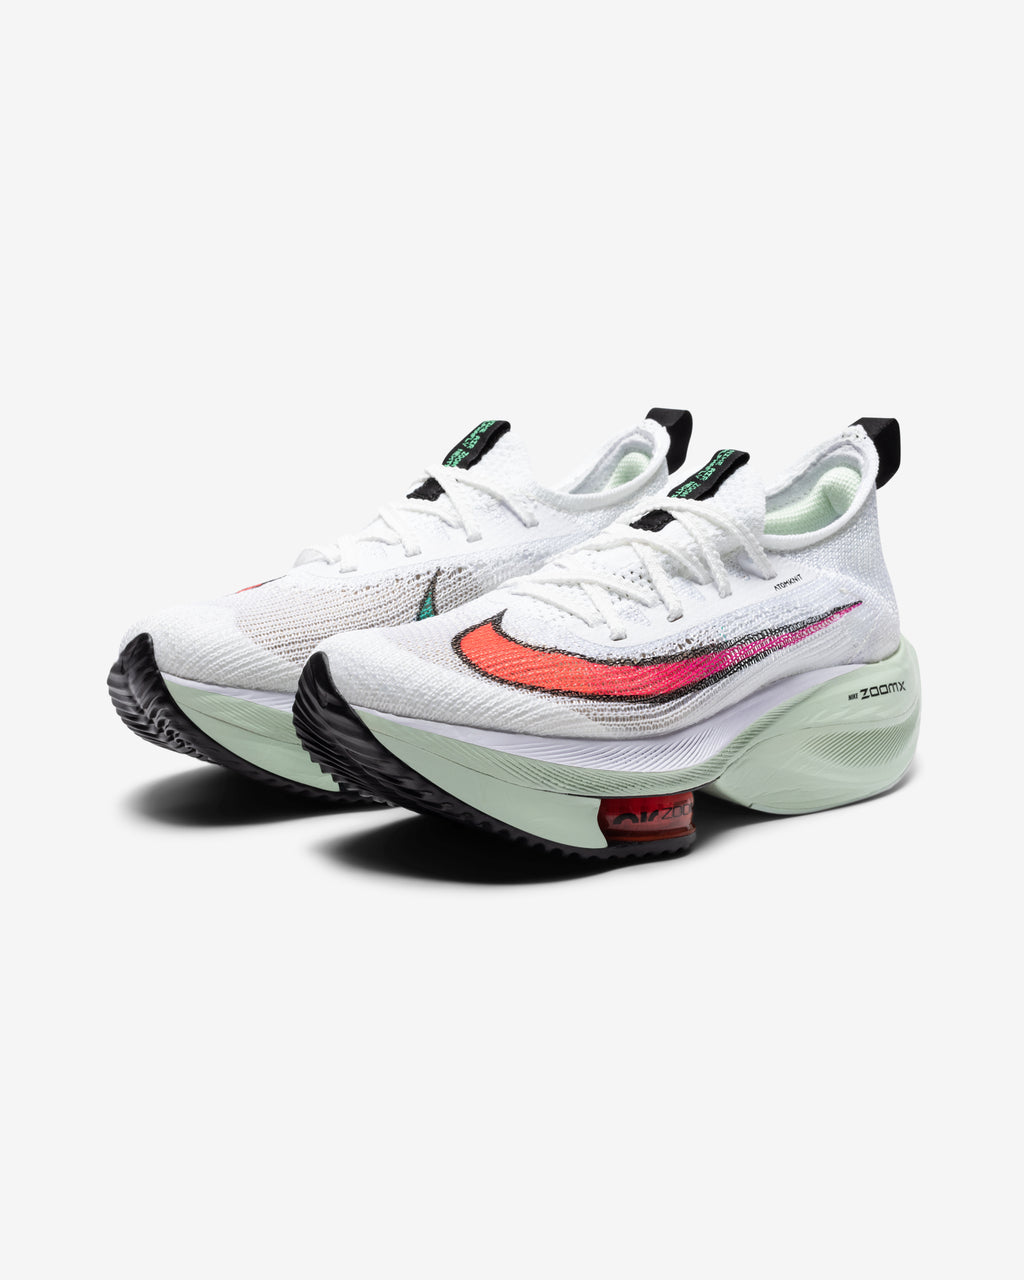 WOMEN'S AIR ZOOM ALPHAFLY NEXT% - WHITE/ FLASHCRIMSON/ JADEAURA